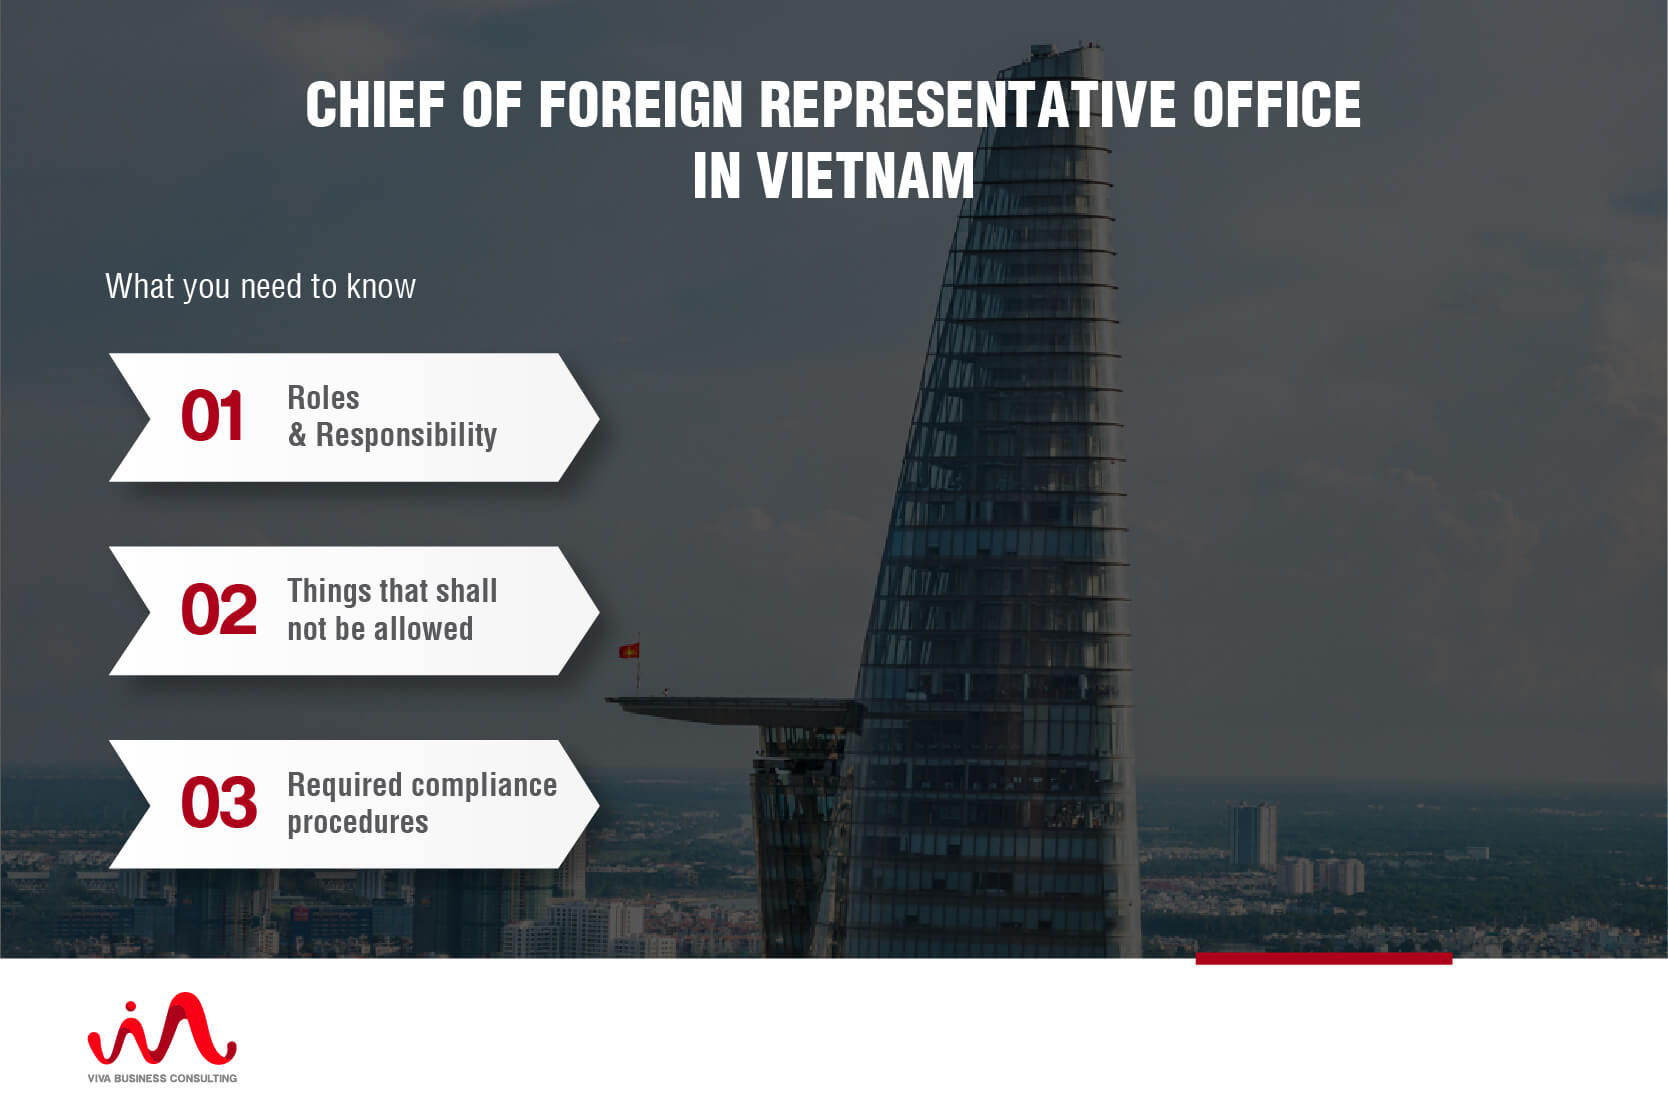 Chief of representative office in Vietnam